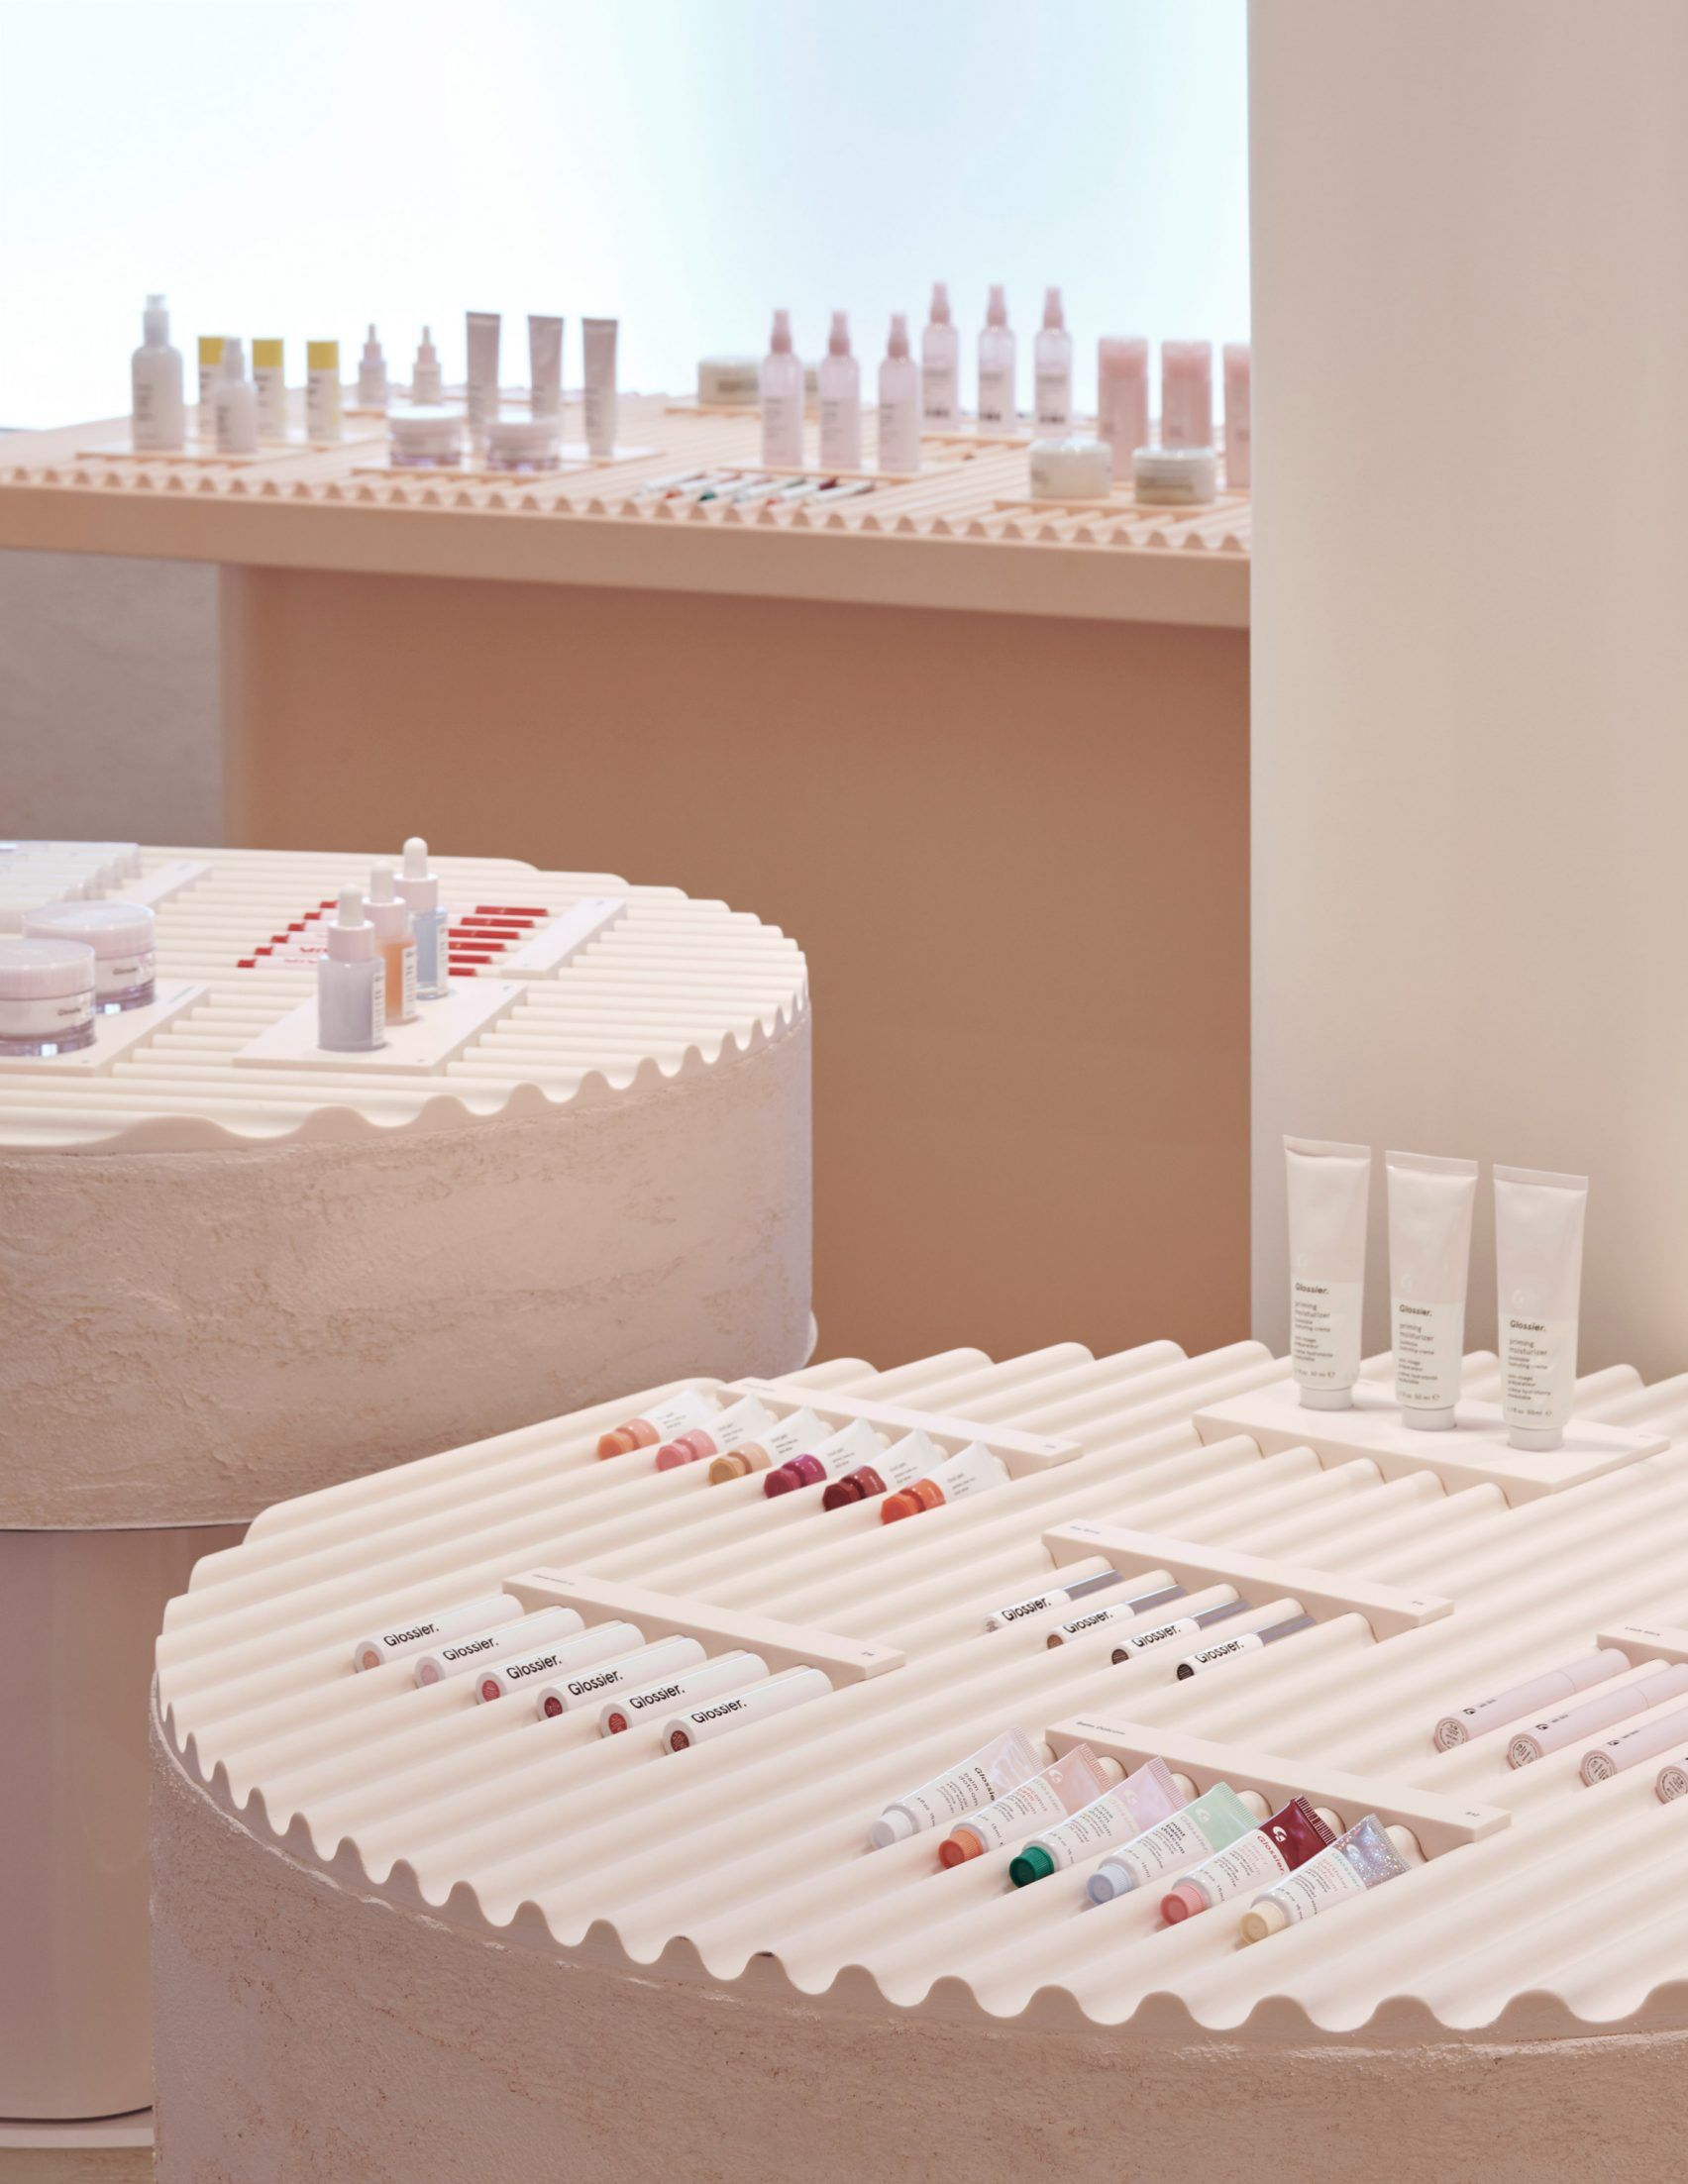 Glossier Flagship by Gachot Studios and PRO.jpeg